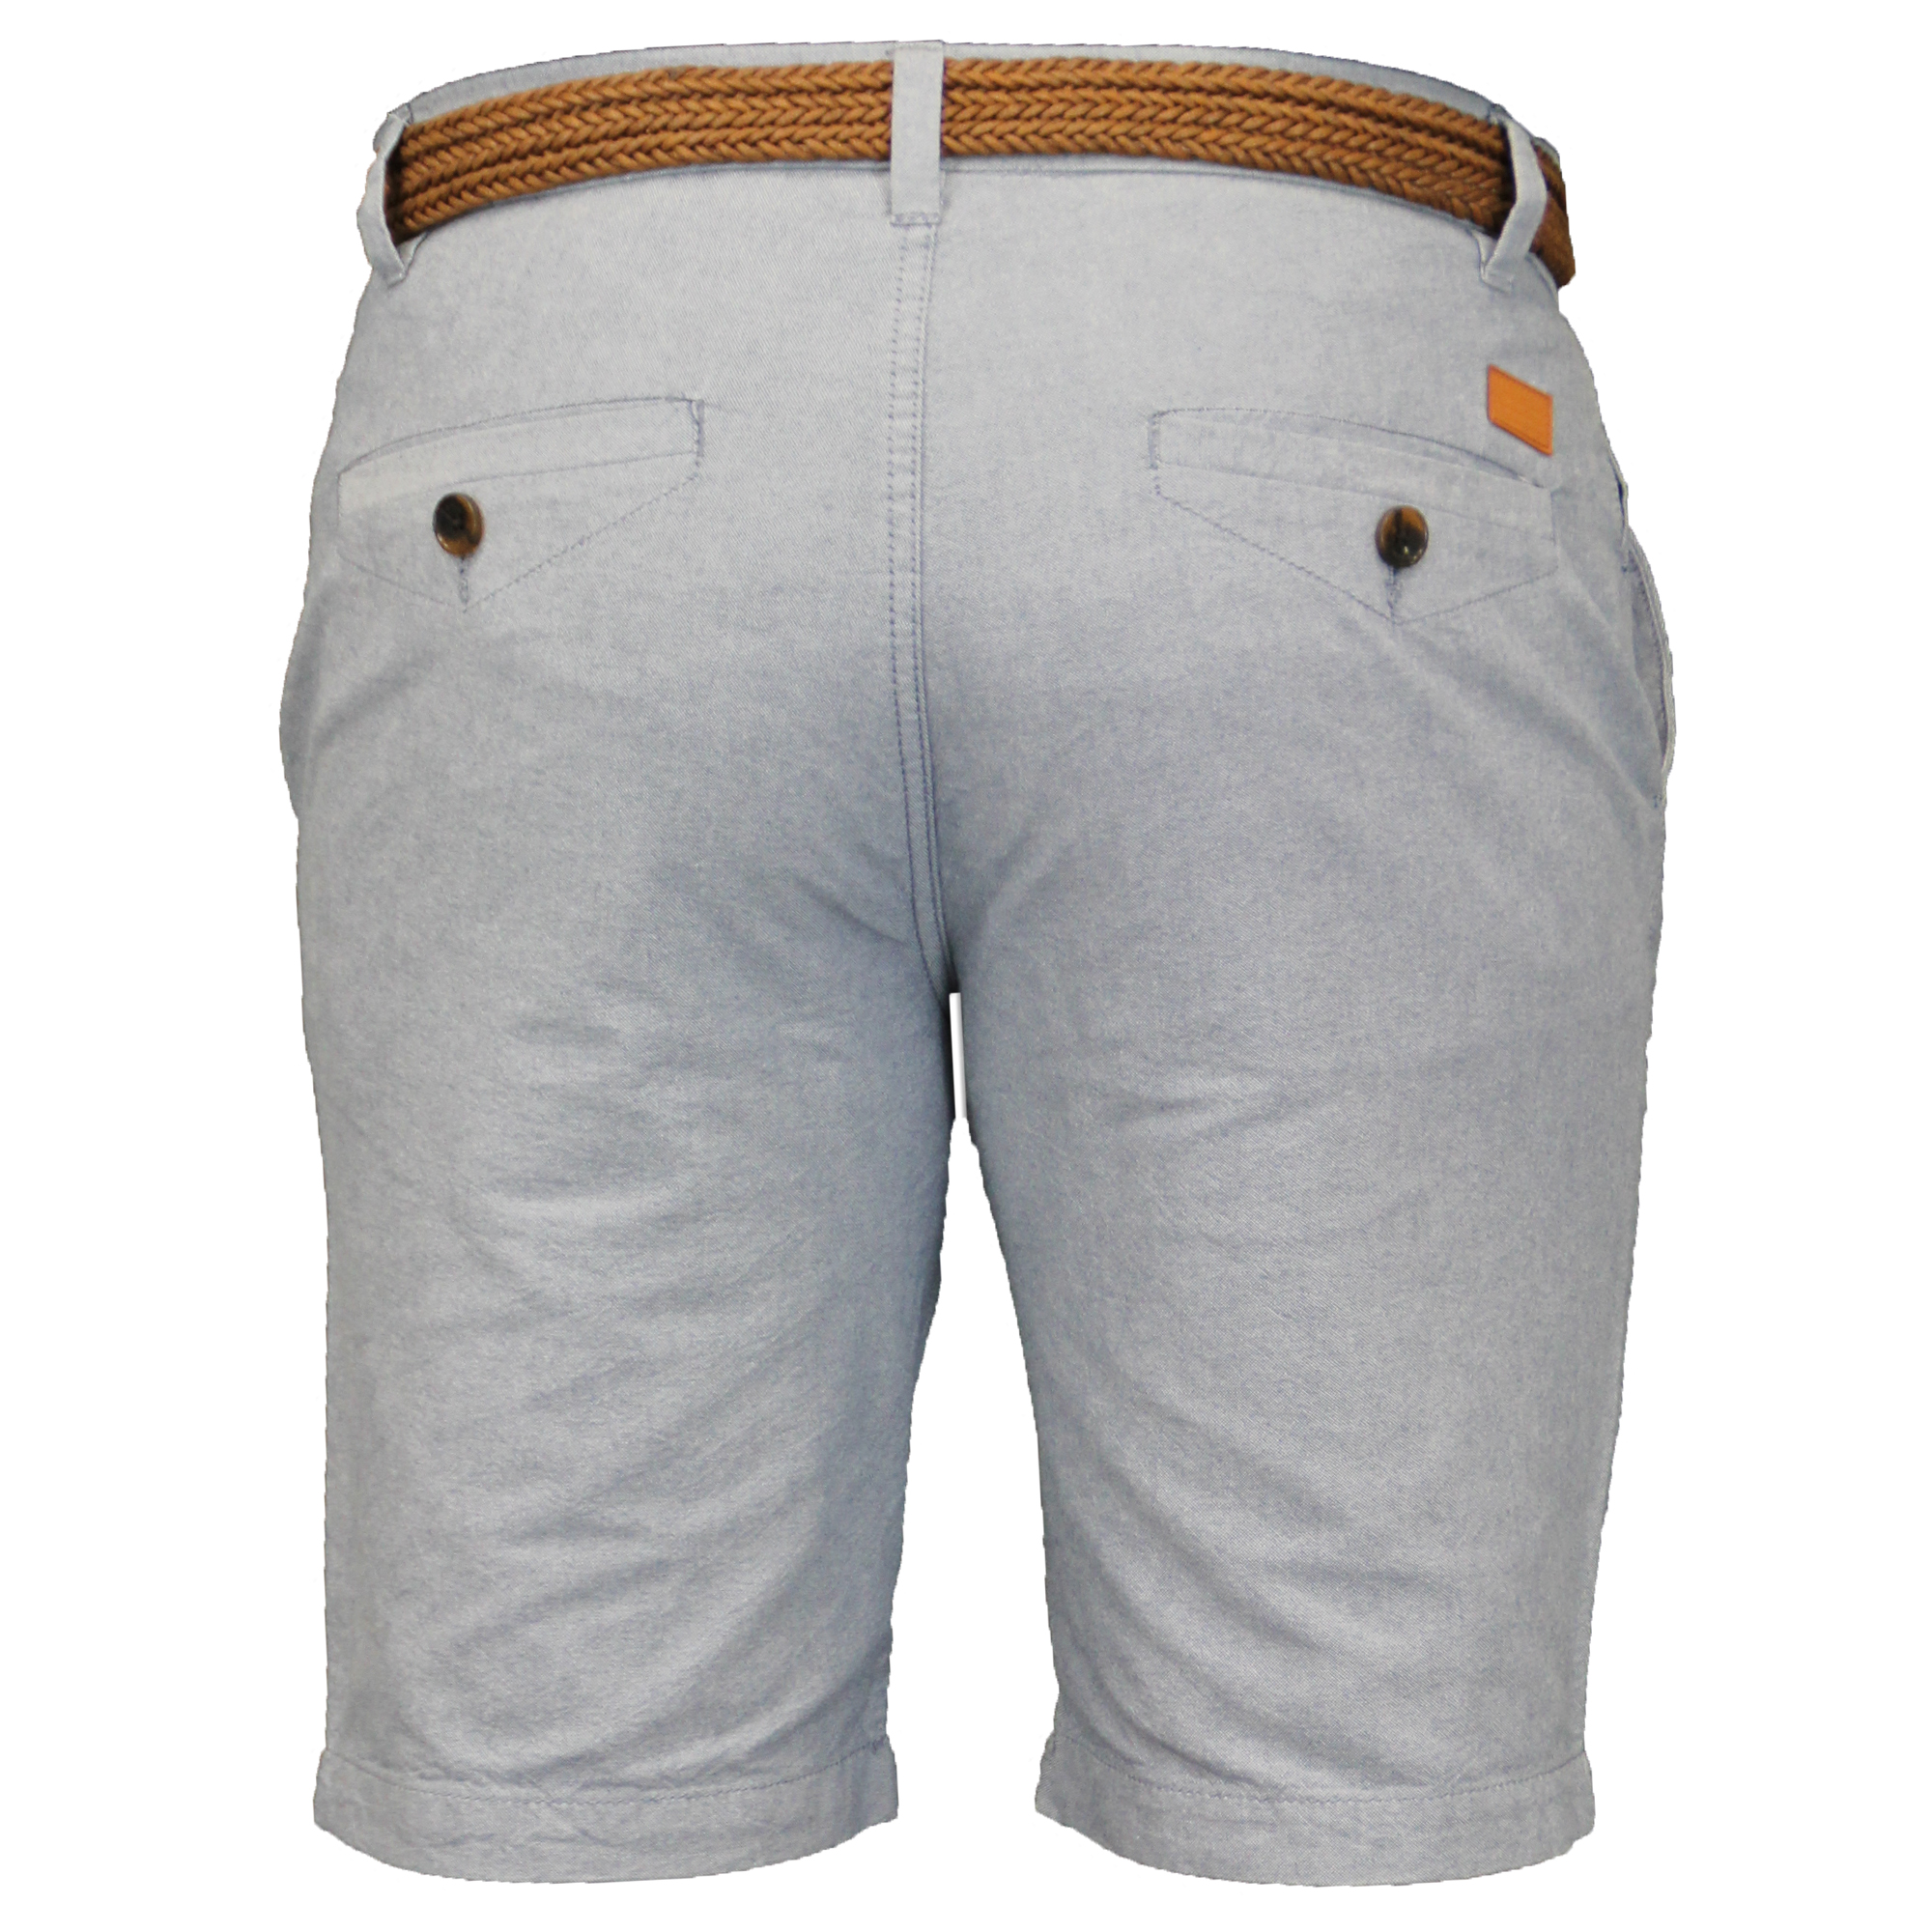 Mens-Cotton-Oxford-Chino-Shorts-Threadbare-Belted-Pants-Knee-Length-Summer-New thumbnail 5